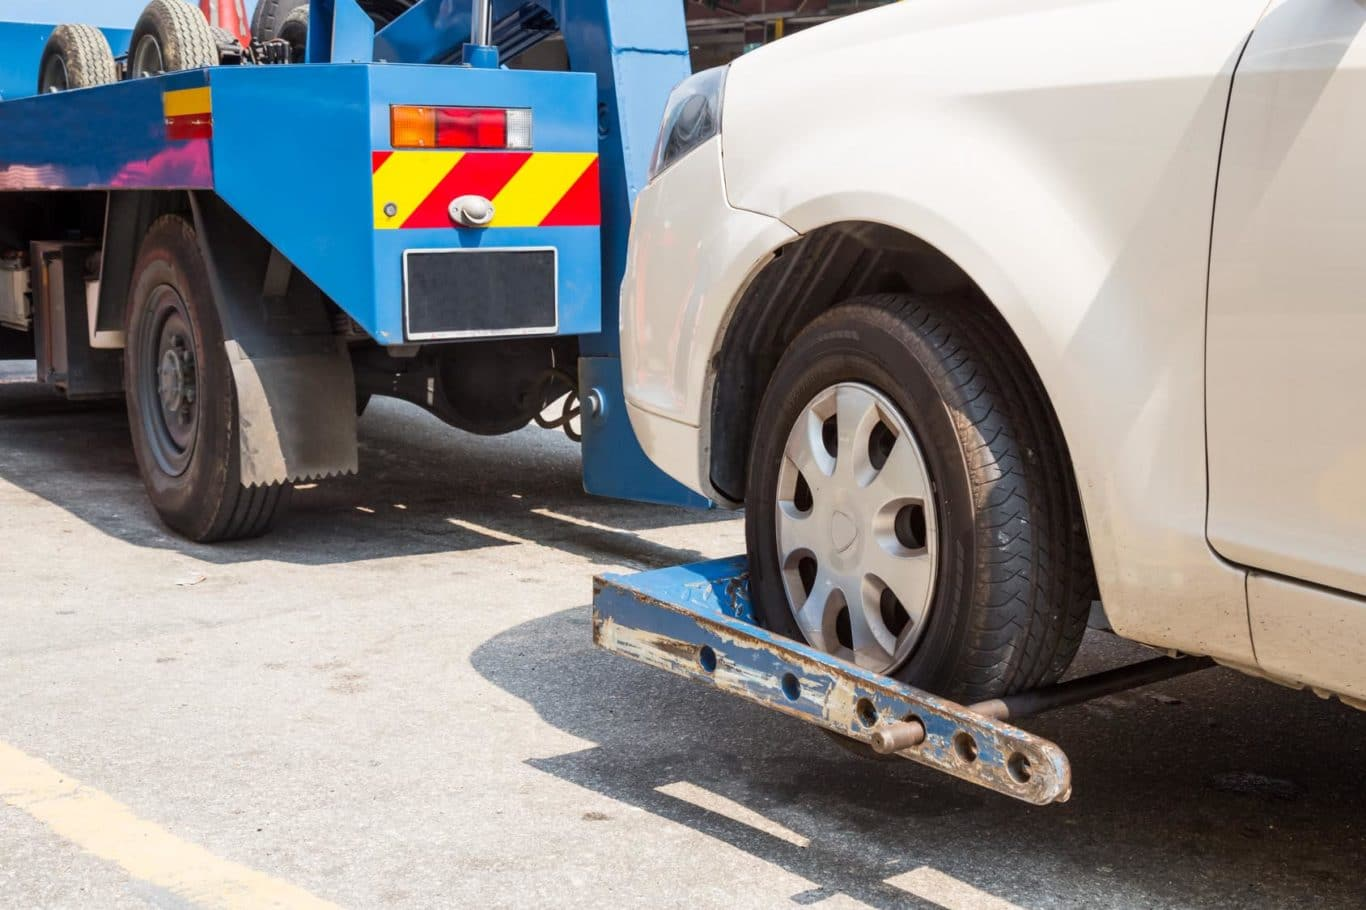 Damastown expert Roadside Assistance services